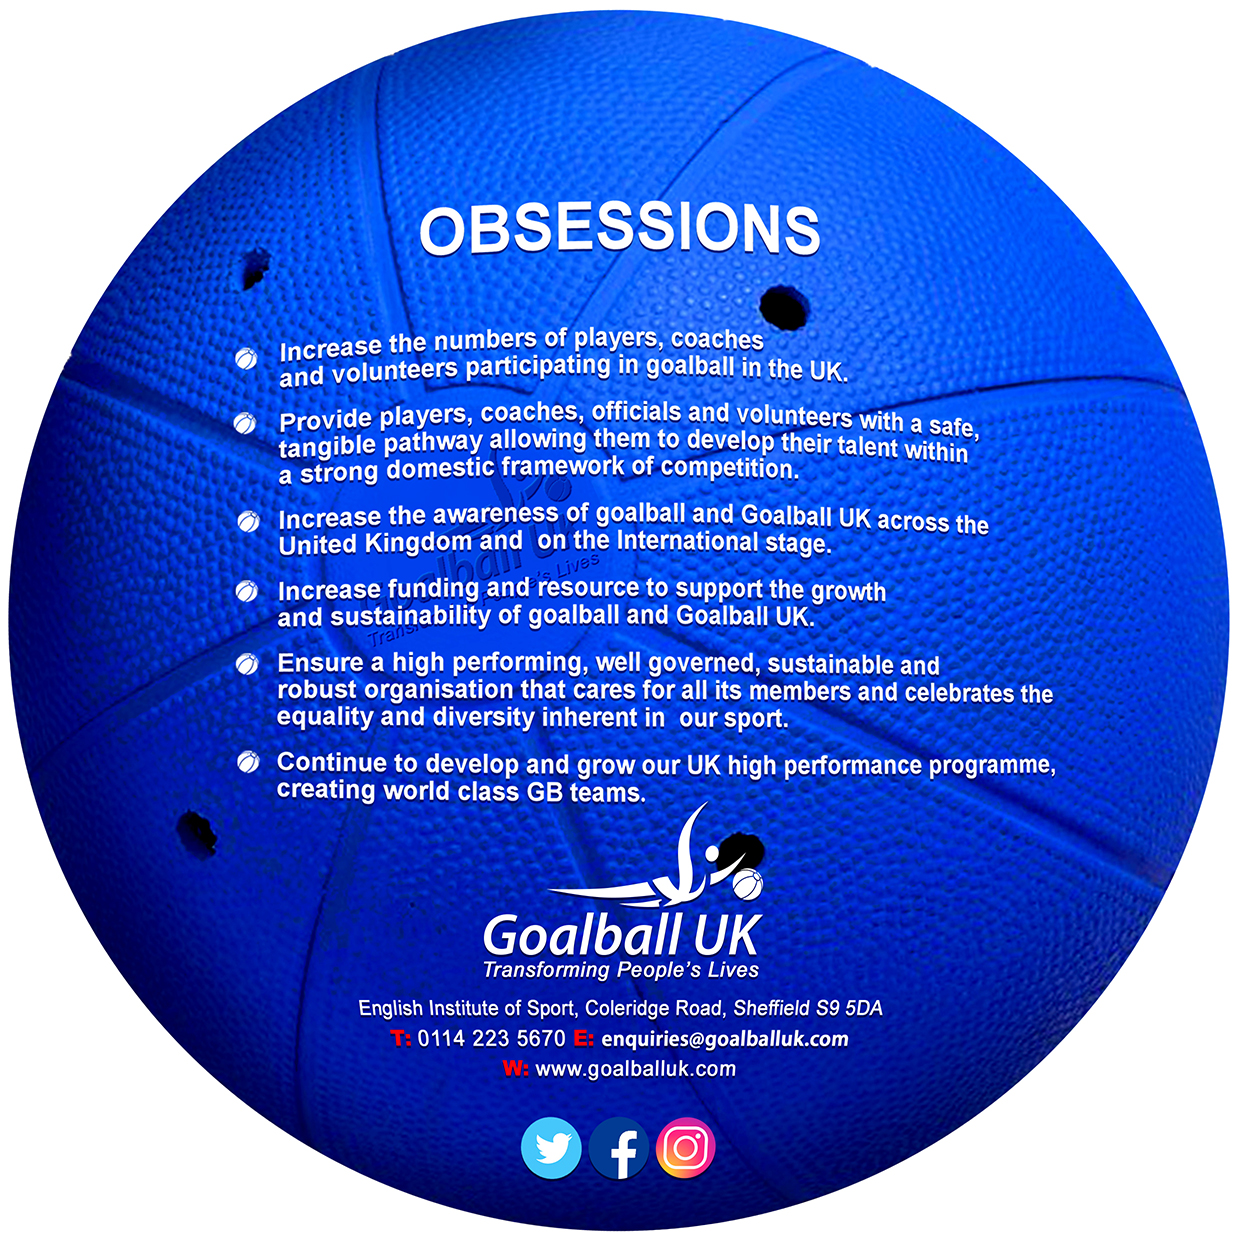 List of Goalball UK obsessions, with Goalball UK logo and contact details